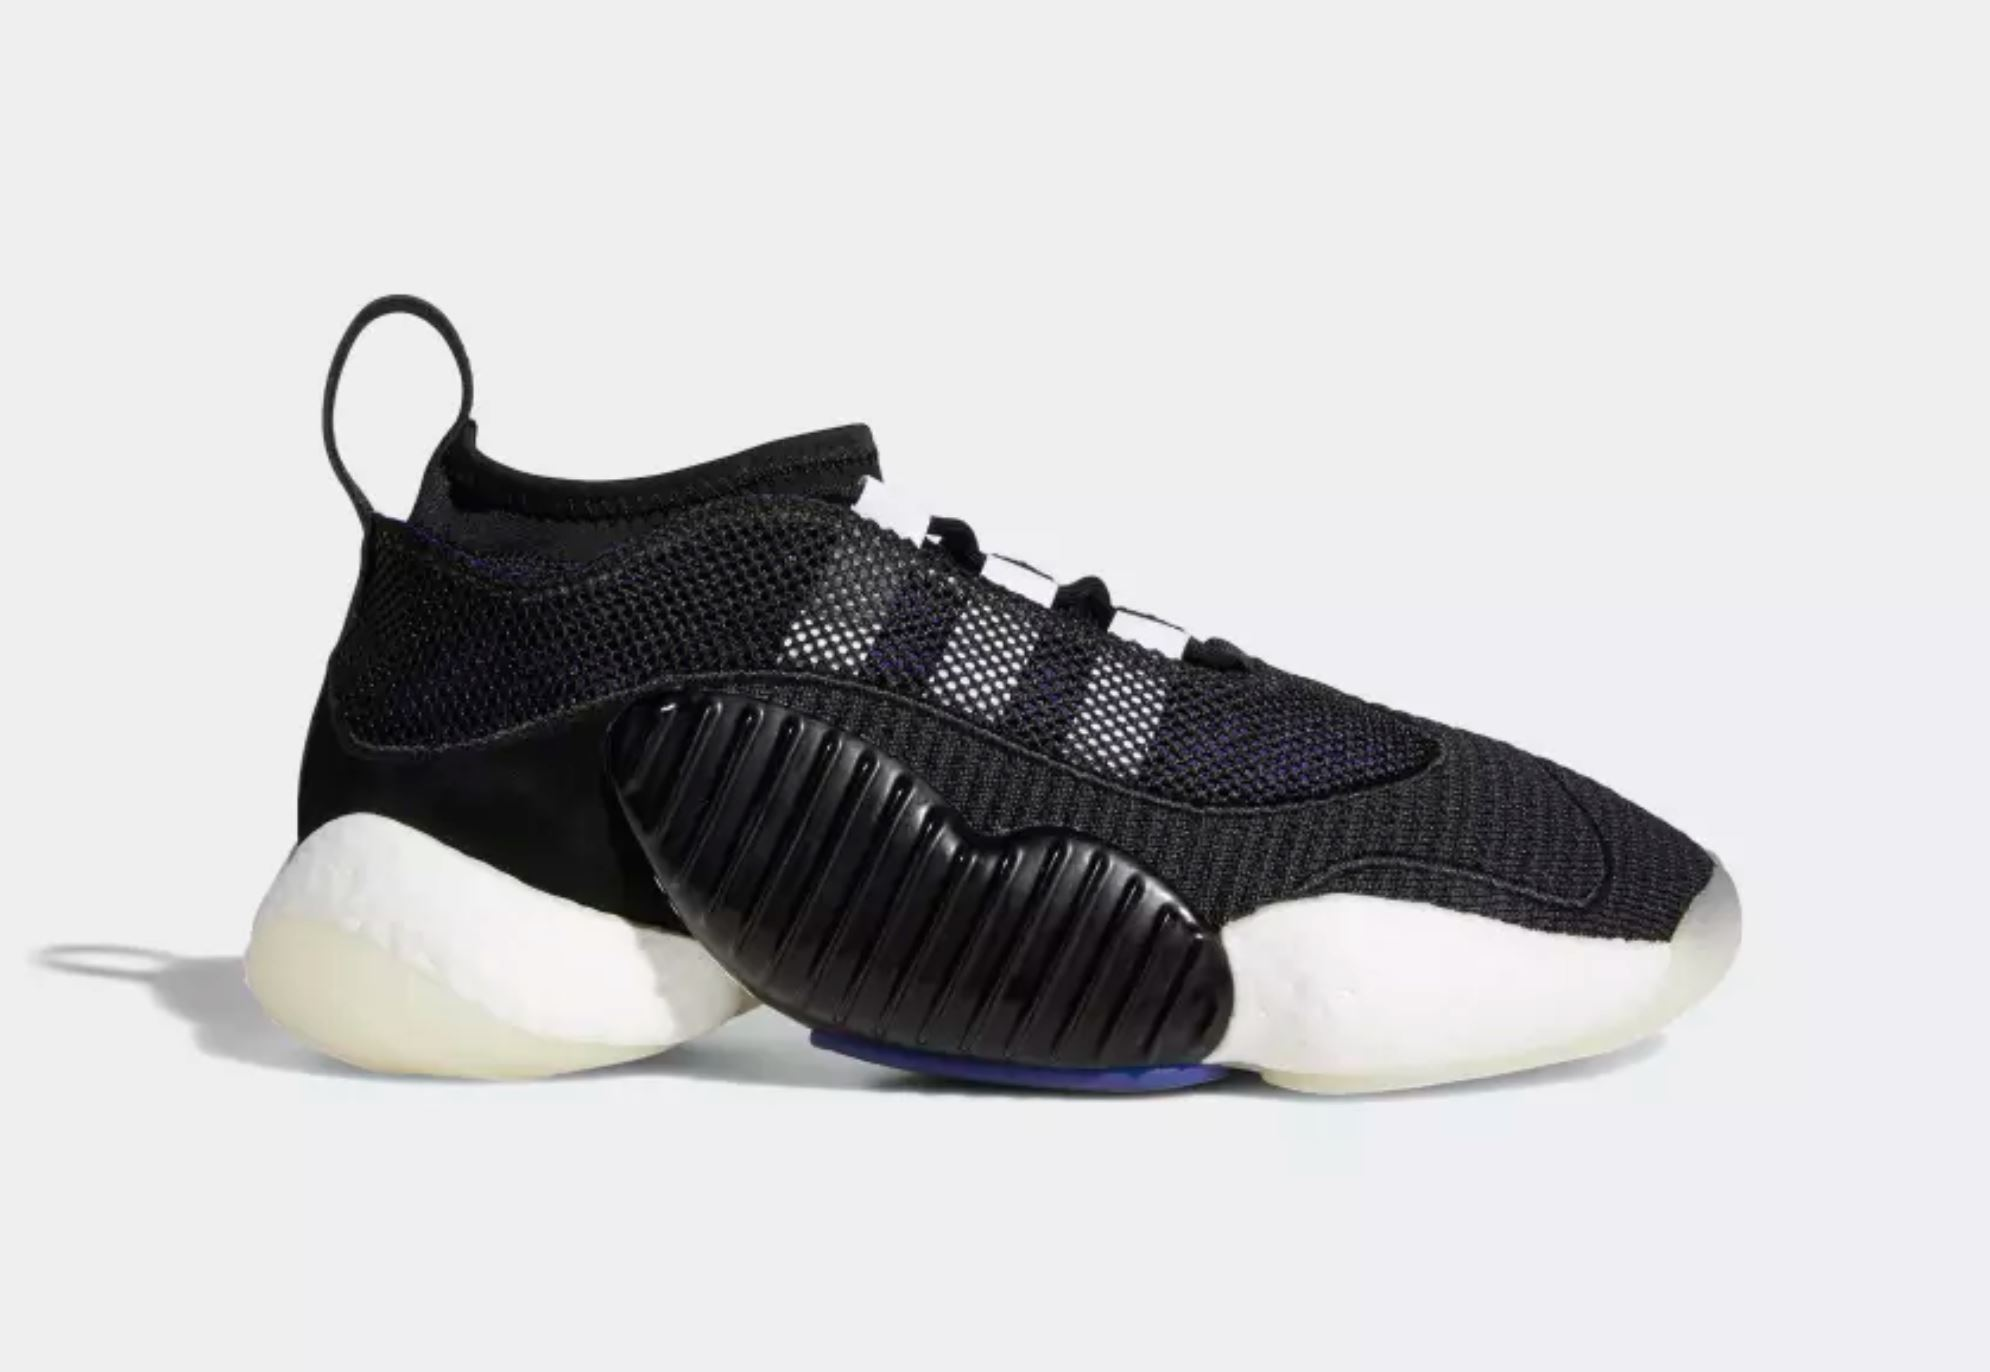 adidas crazy byw II release date